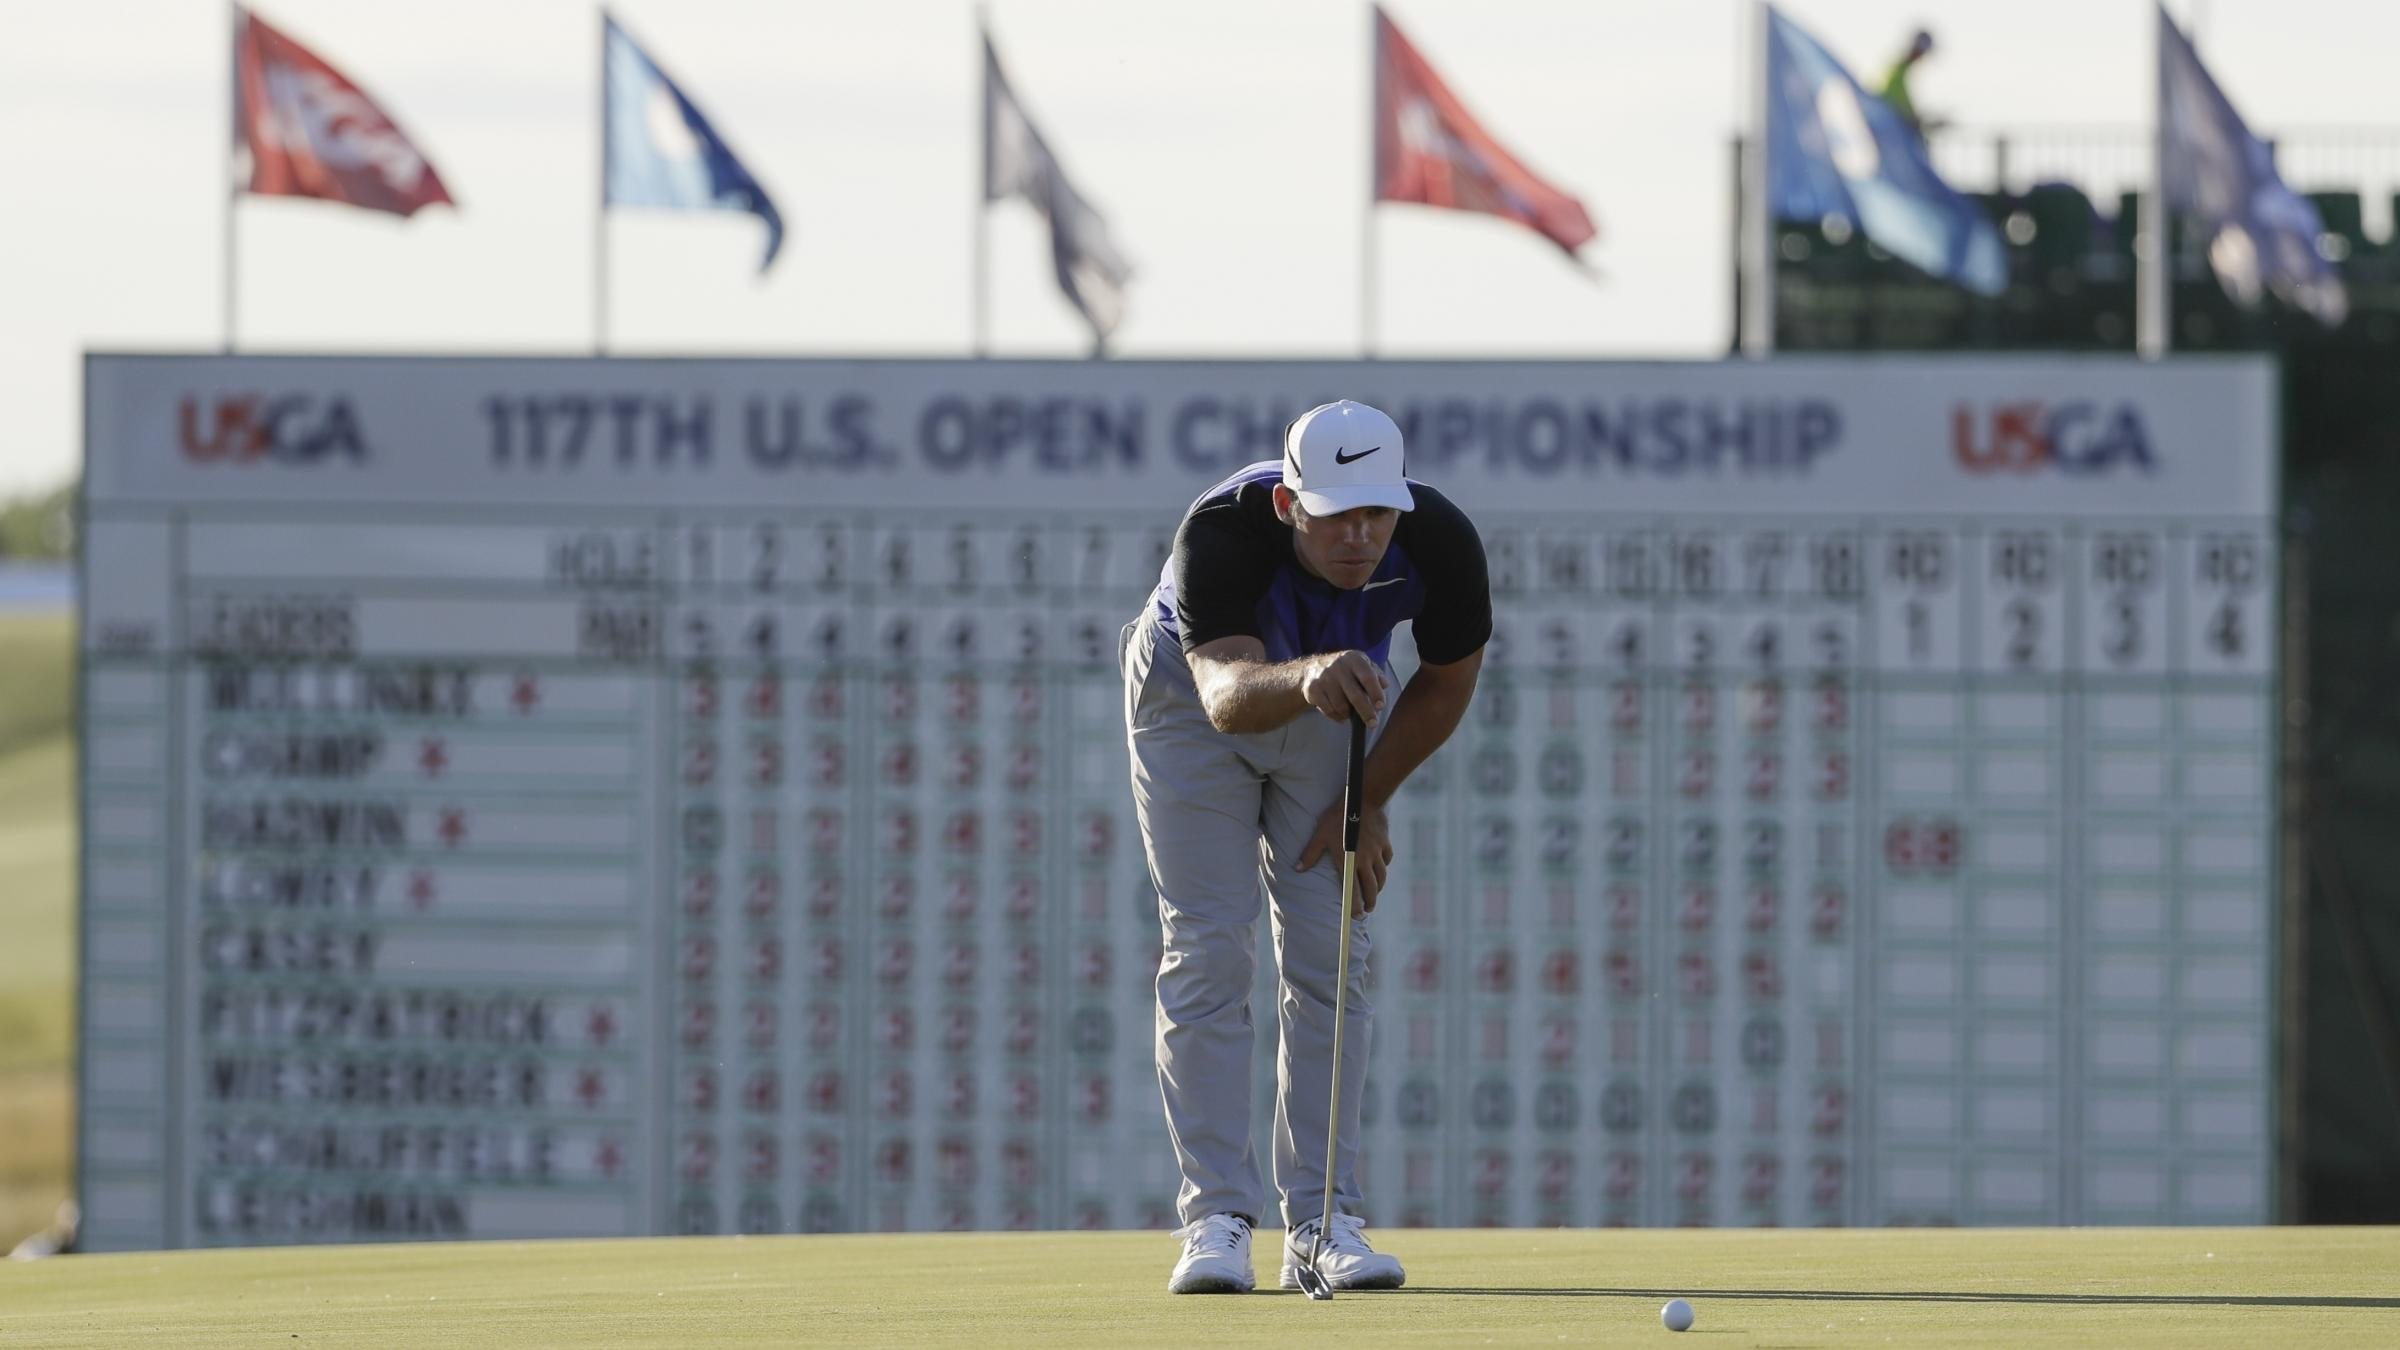 Rory McIlroy dismisses Social Media criticism after missing US Open cut